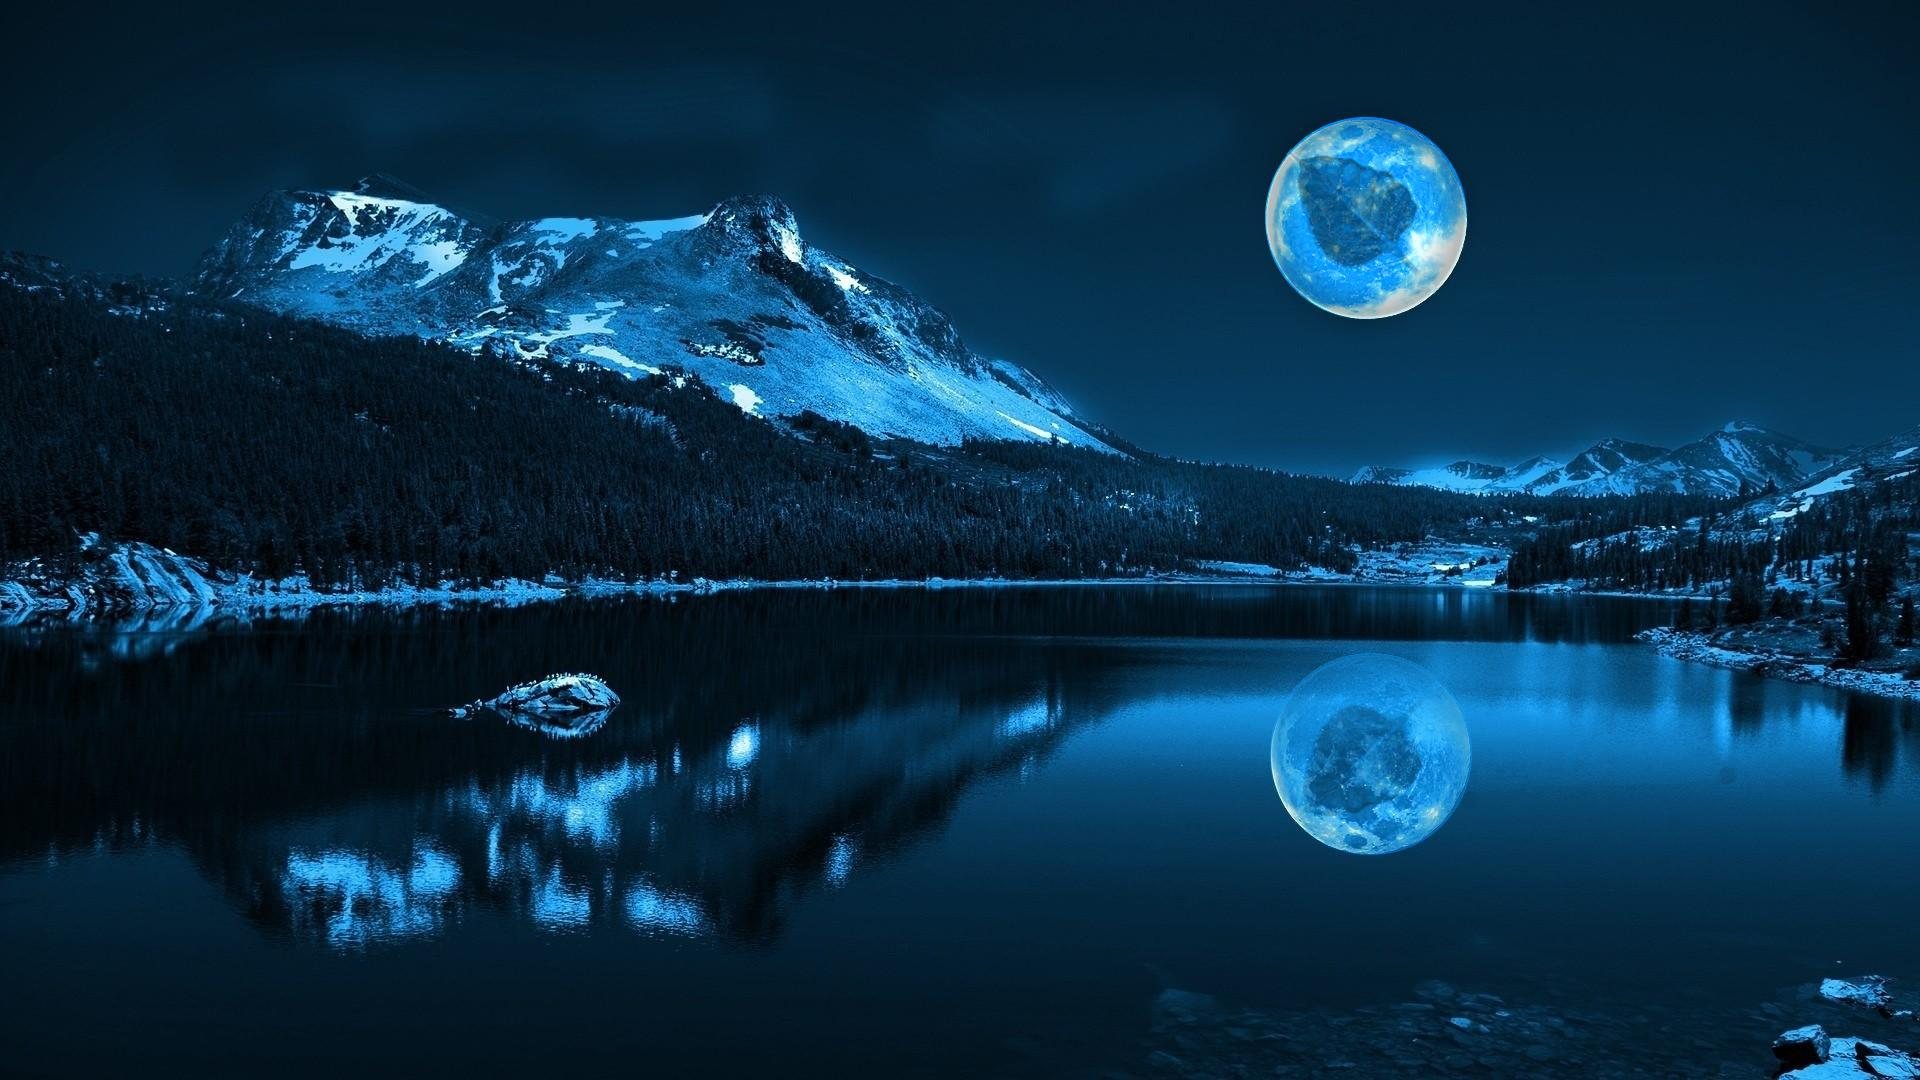 Super Moon Hd Wallpapers For Mobile Phones And Laptops 1920x1200